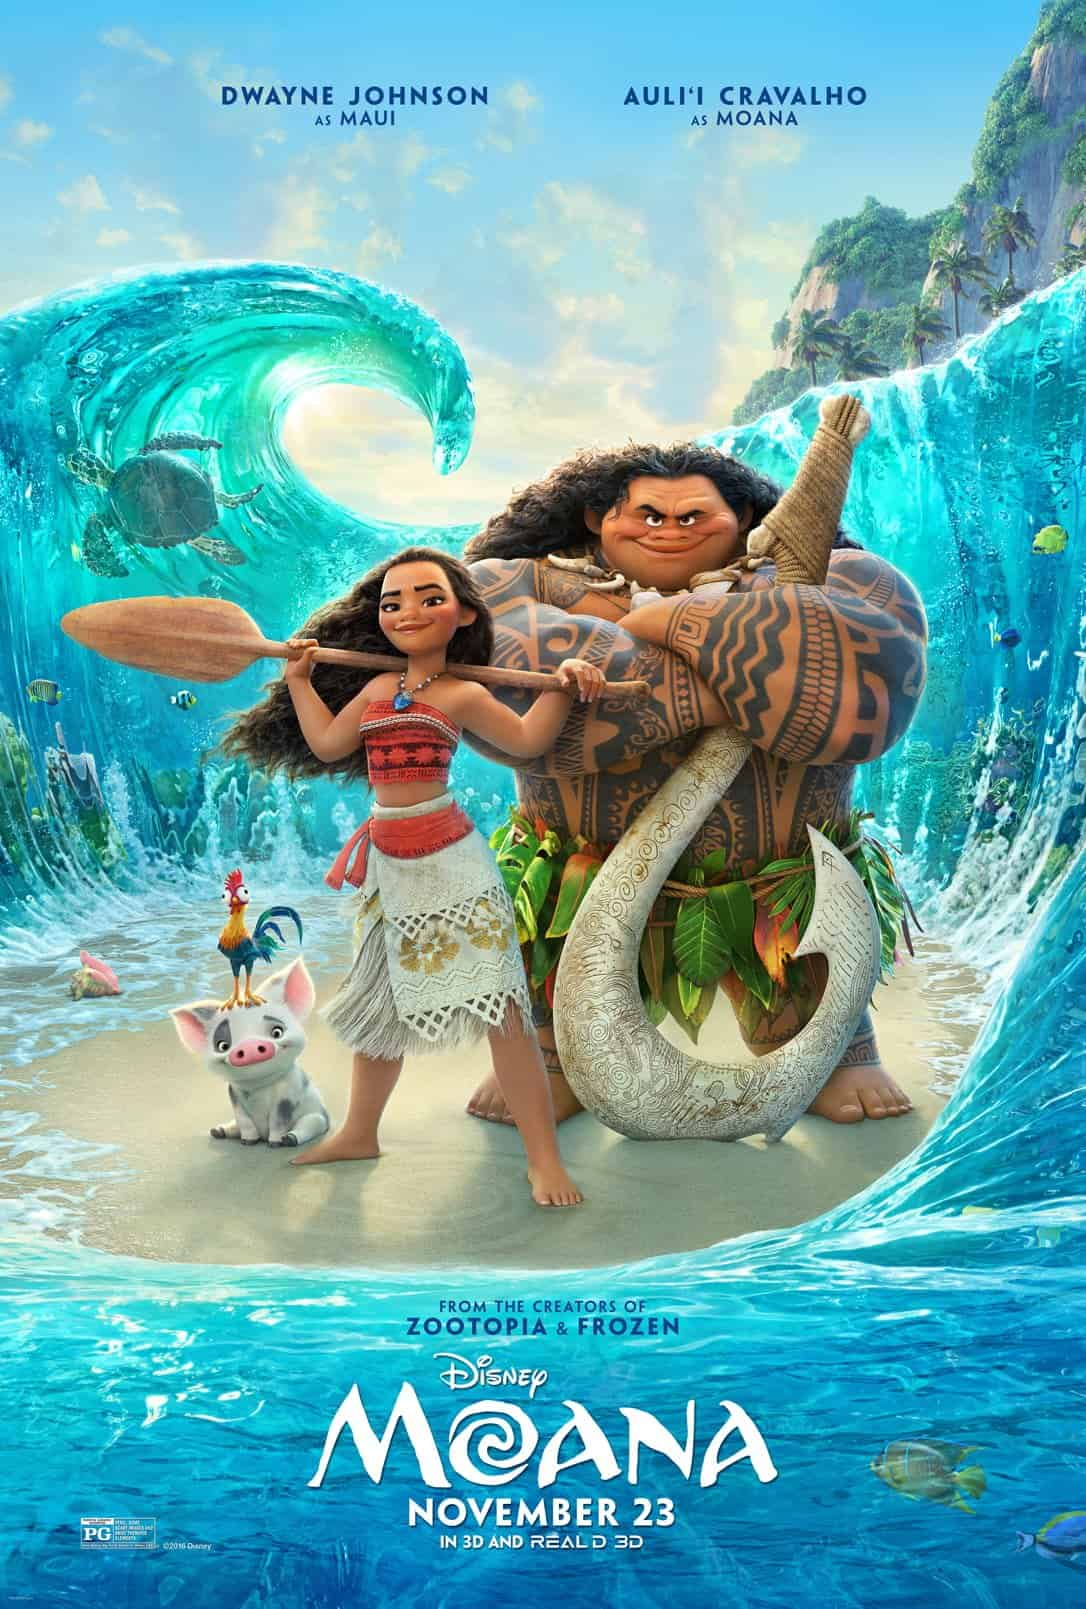 First Look at Disney's Moana Poster